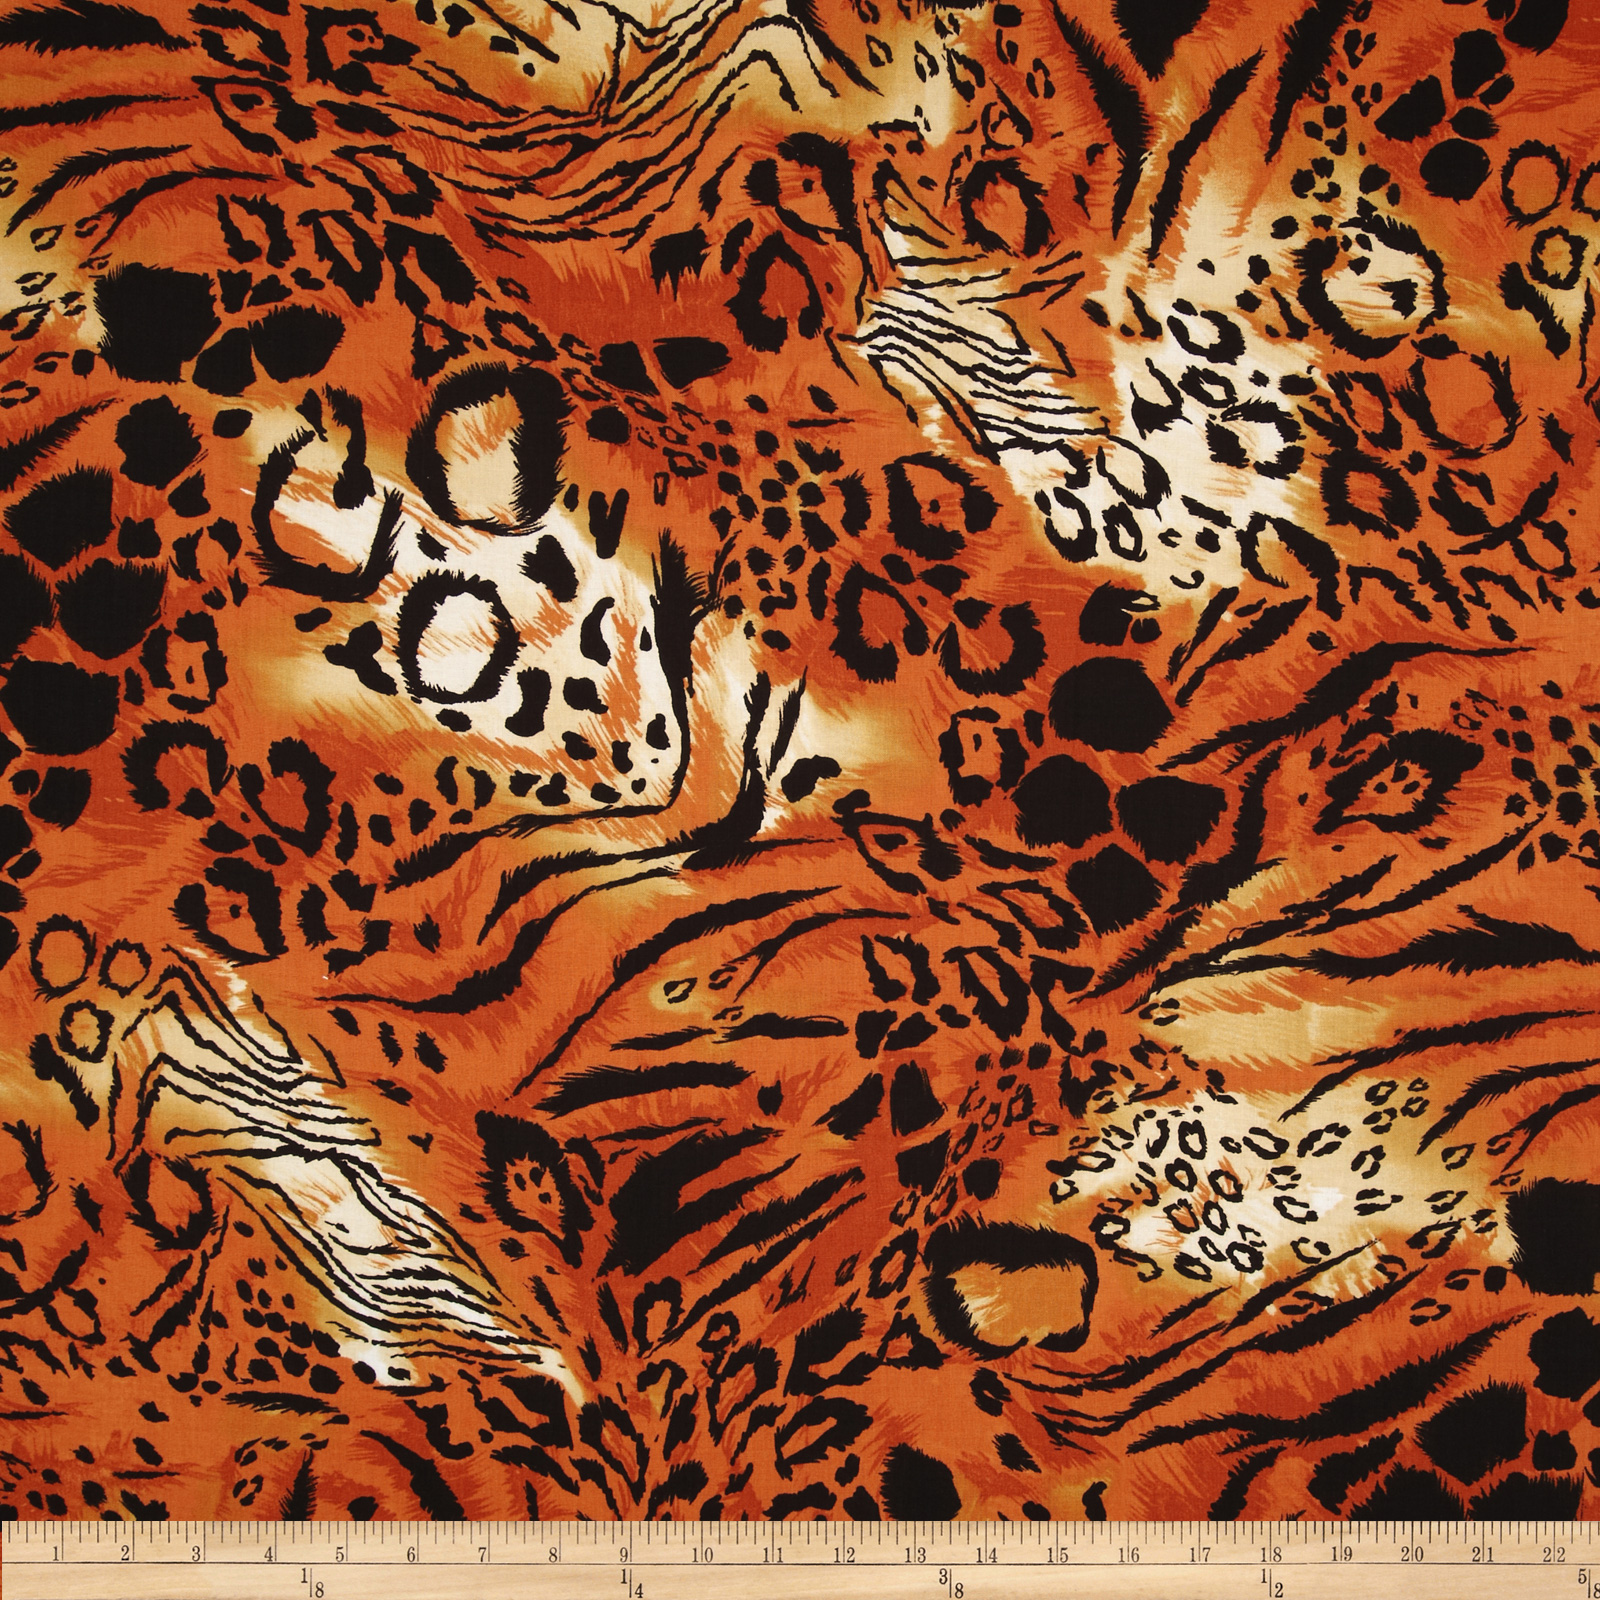 Wild Skins Animal Print Orange/Black Fabric